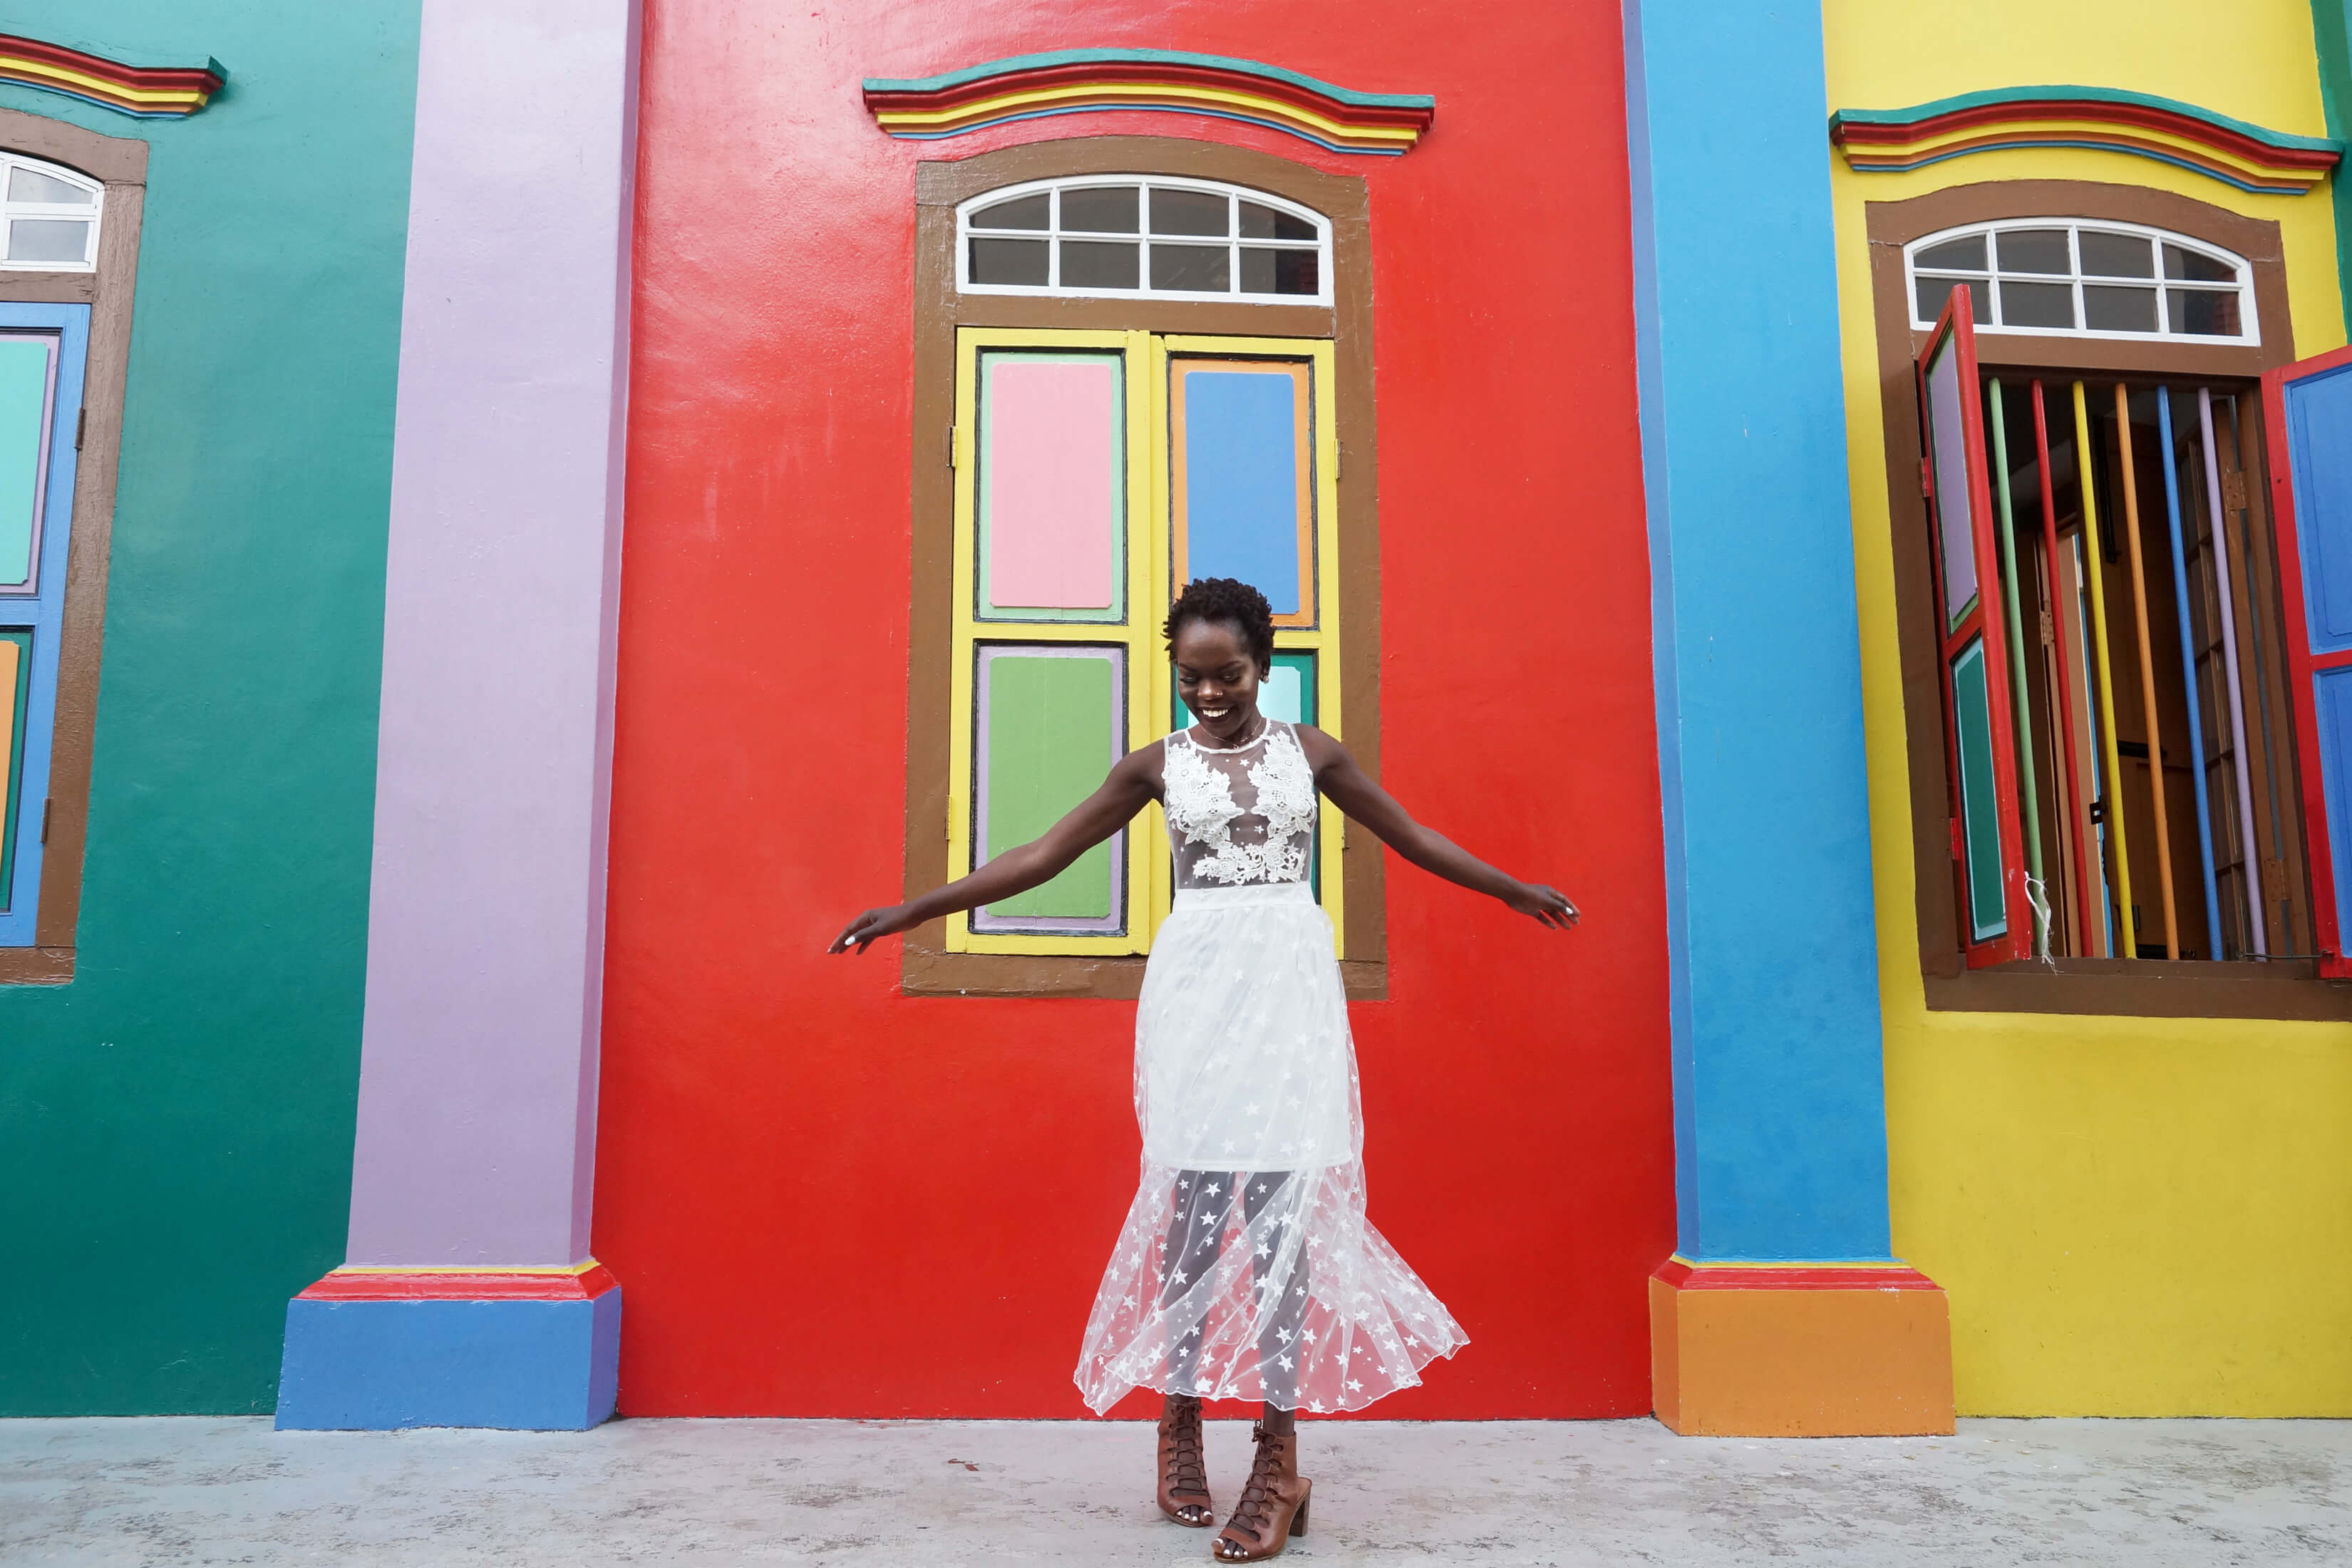 A woman dances in front of a colourful building in Singapore.